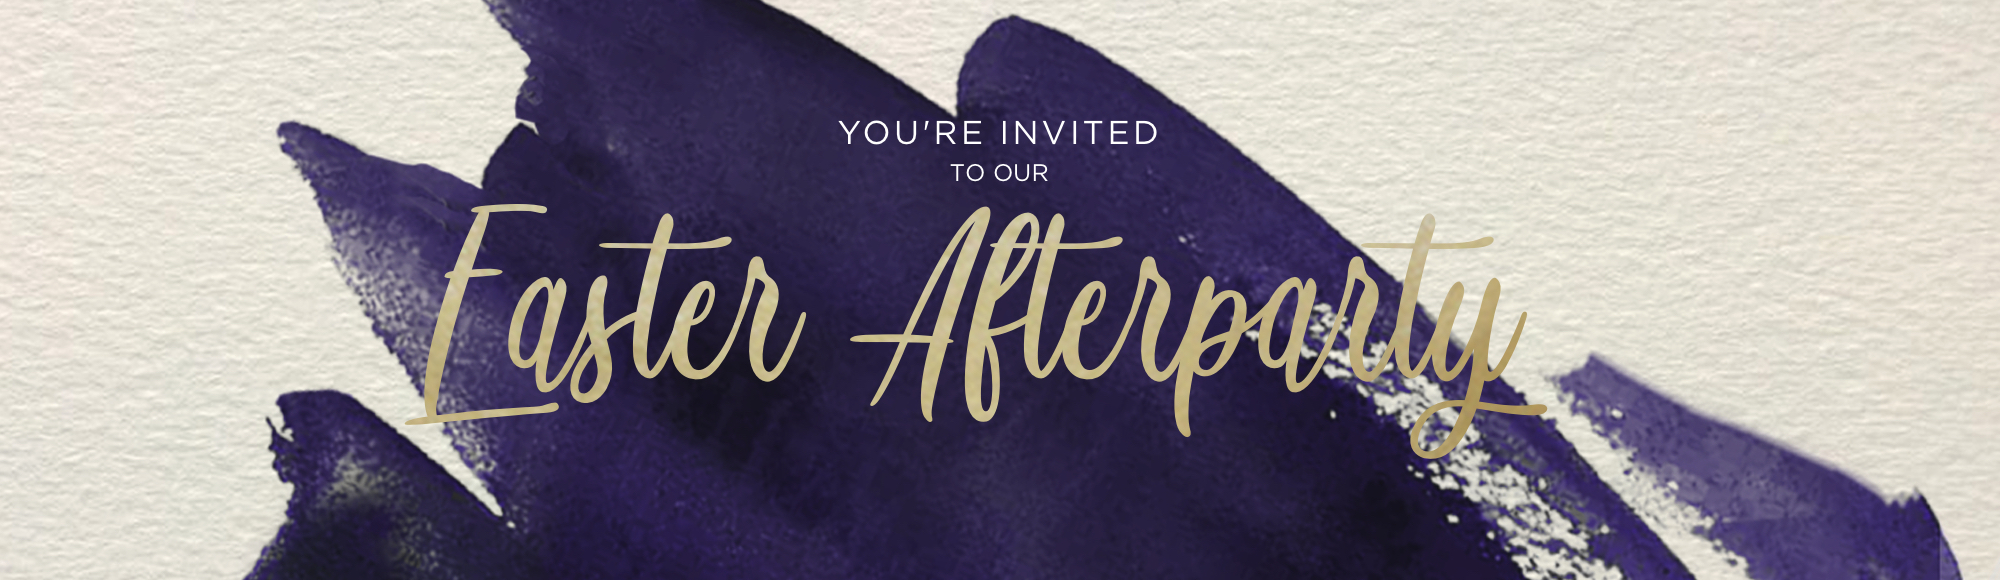 Afterparty Squarespace Banner.jpg